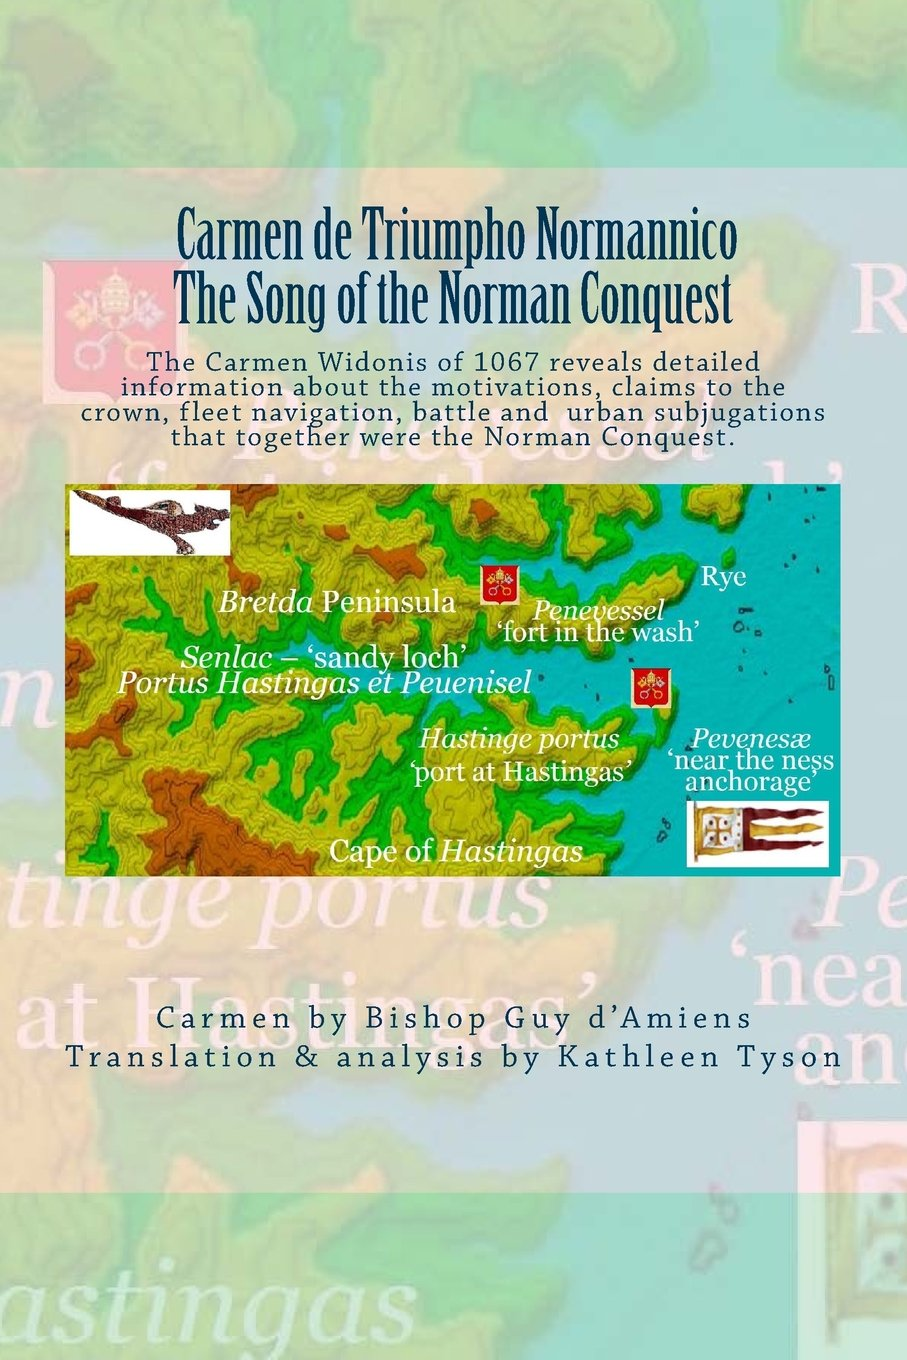 Carmen de Triumpho Normannico - The Song of the Norman Conquest: A new transcription and translation of the earliest account of the Norman Conquest PDF